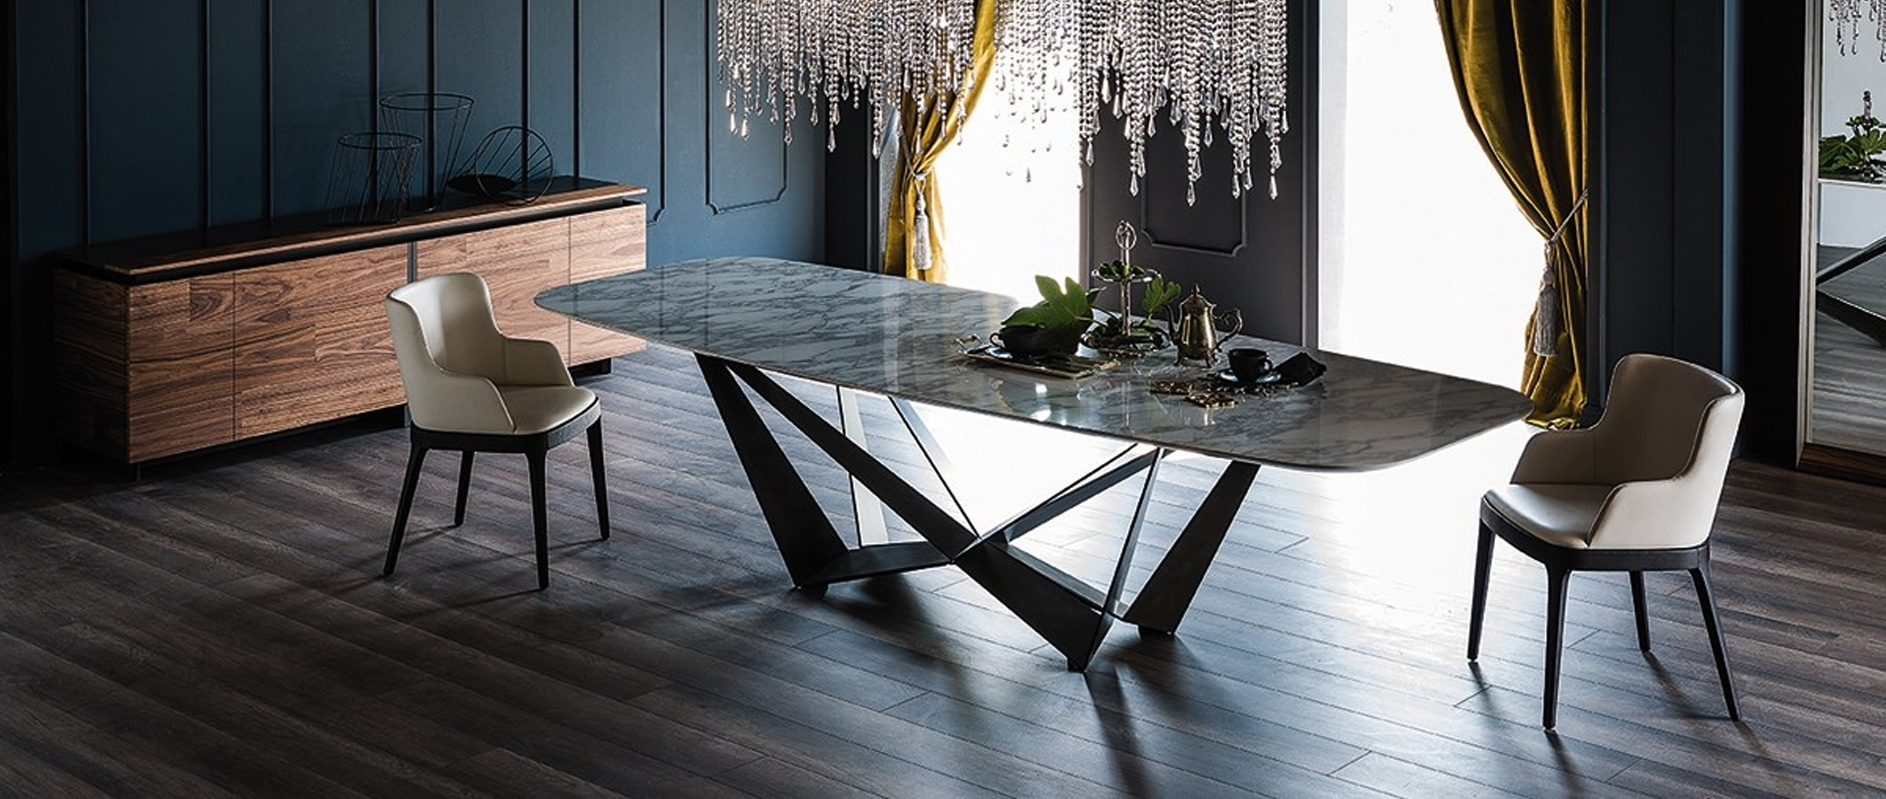 Modern Dining Room Furniture – Modern Dining Tables, Dining Chairs For Well Known Contemporary Dining Sets (View 13 of 25)